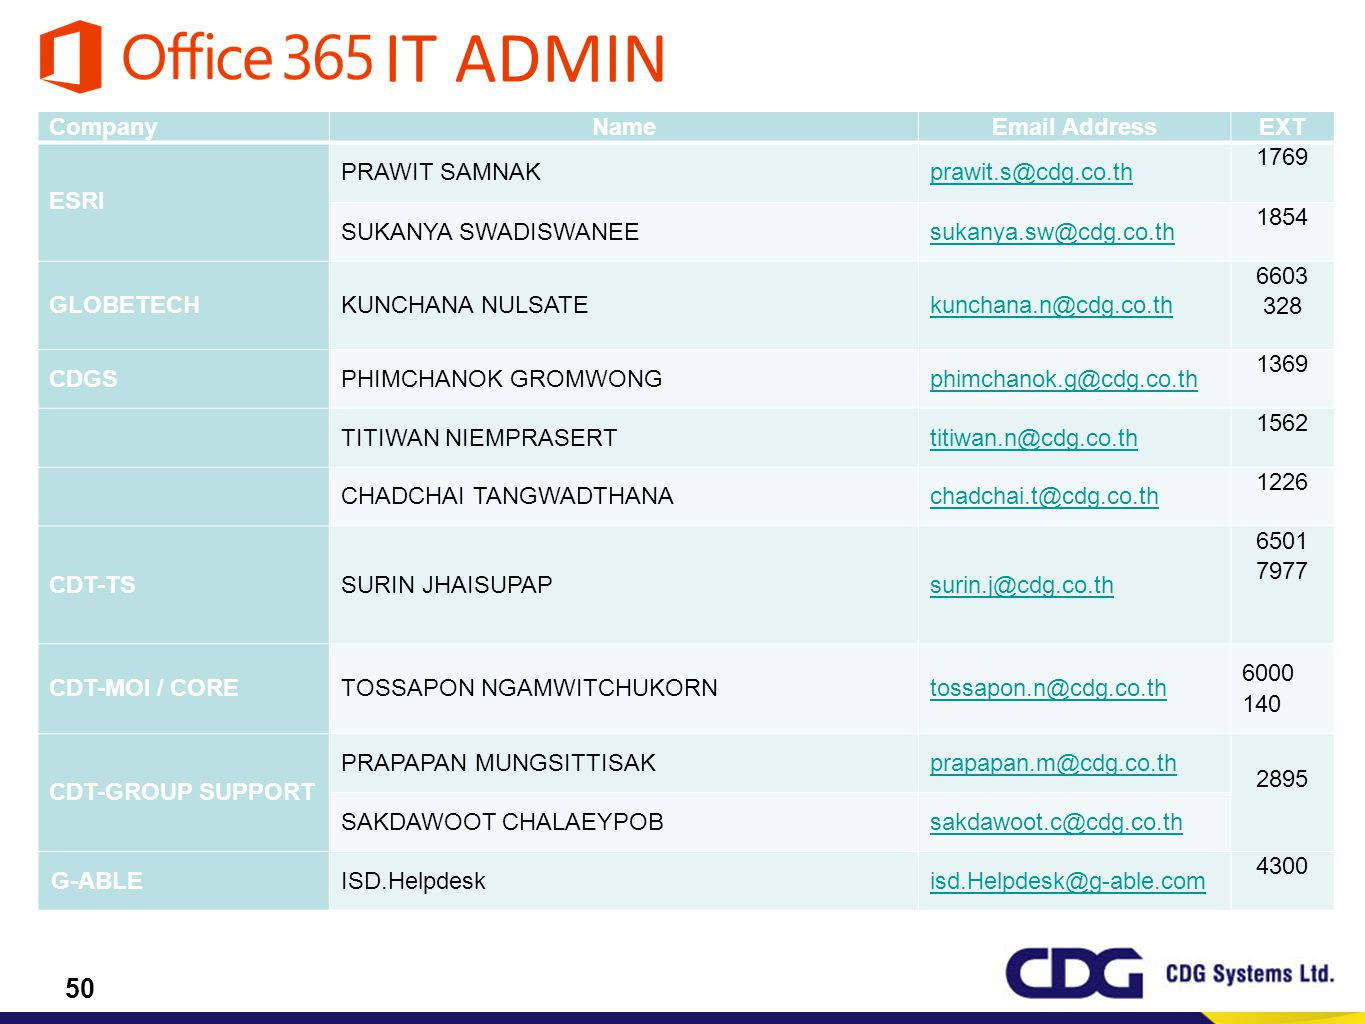 IT ADMIN Company Name Email Address EXT ESRI PRAWIT SAMNAK